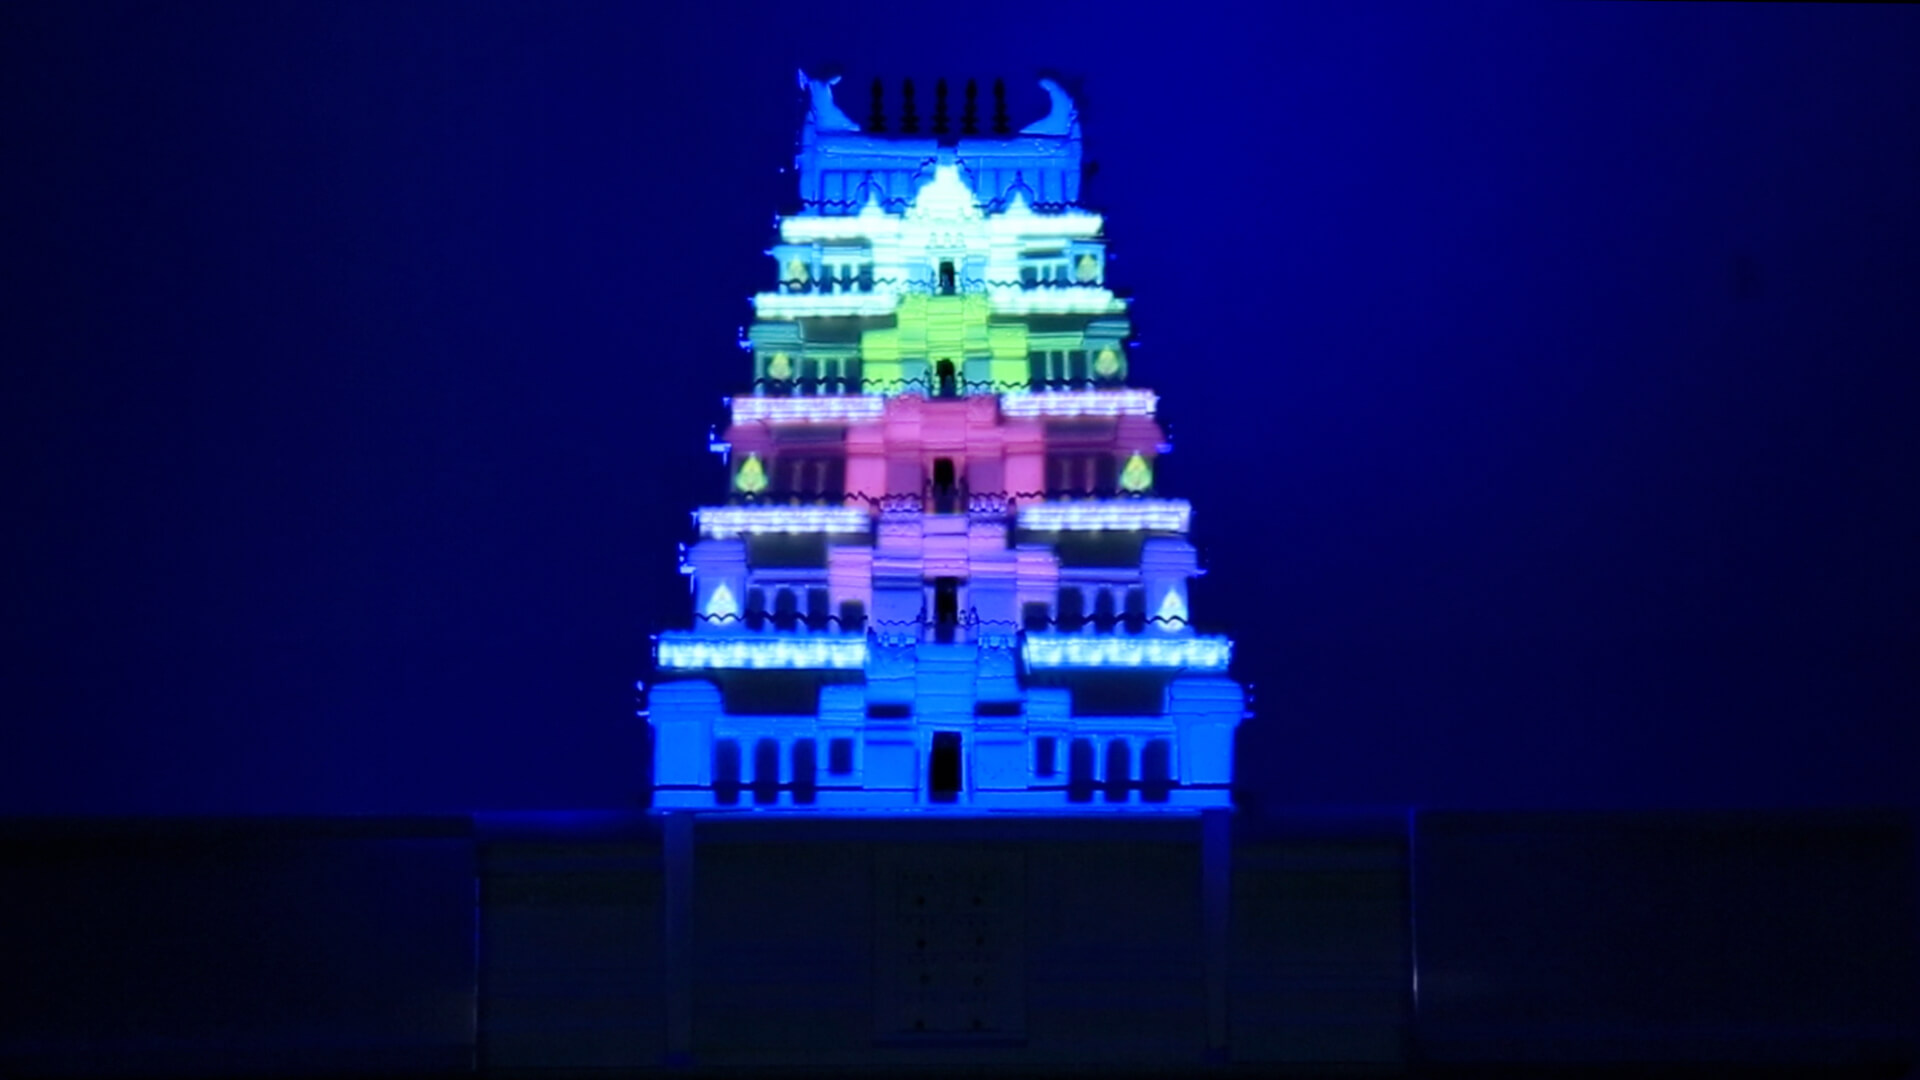 Temple projection mapping, video mapping, srushti, holographic projection